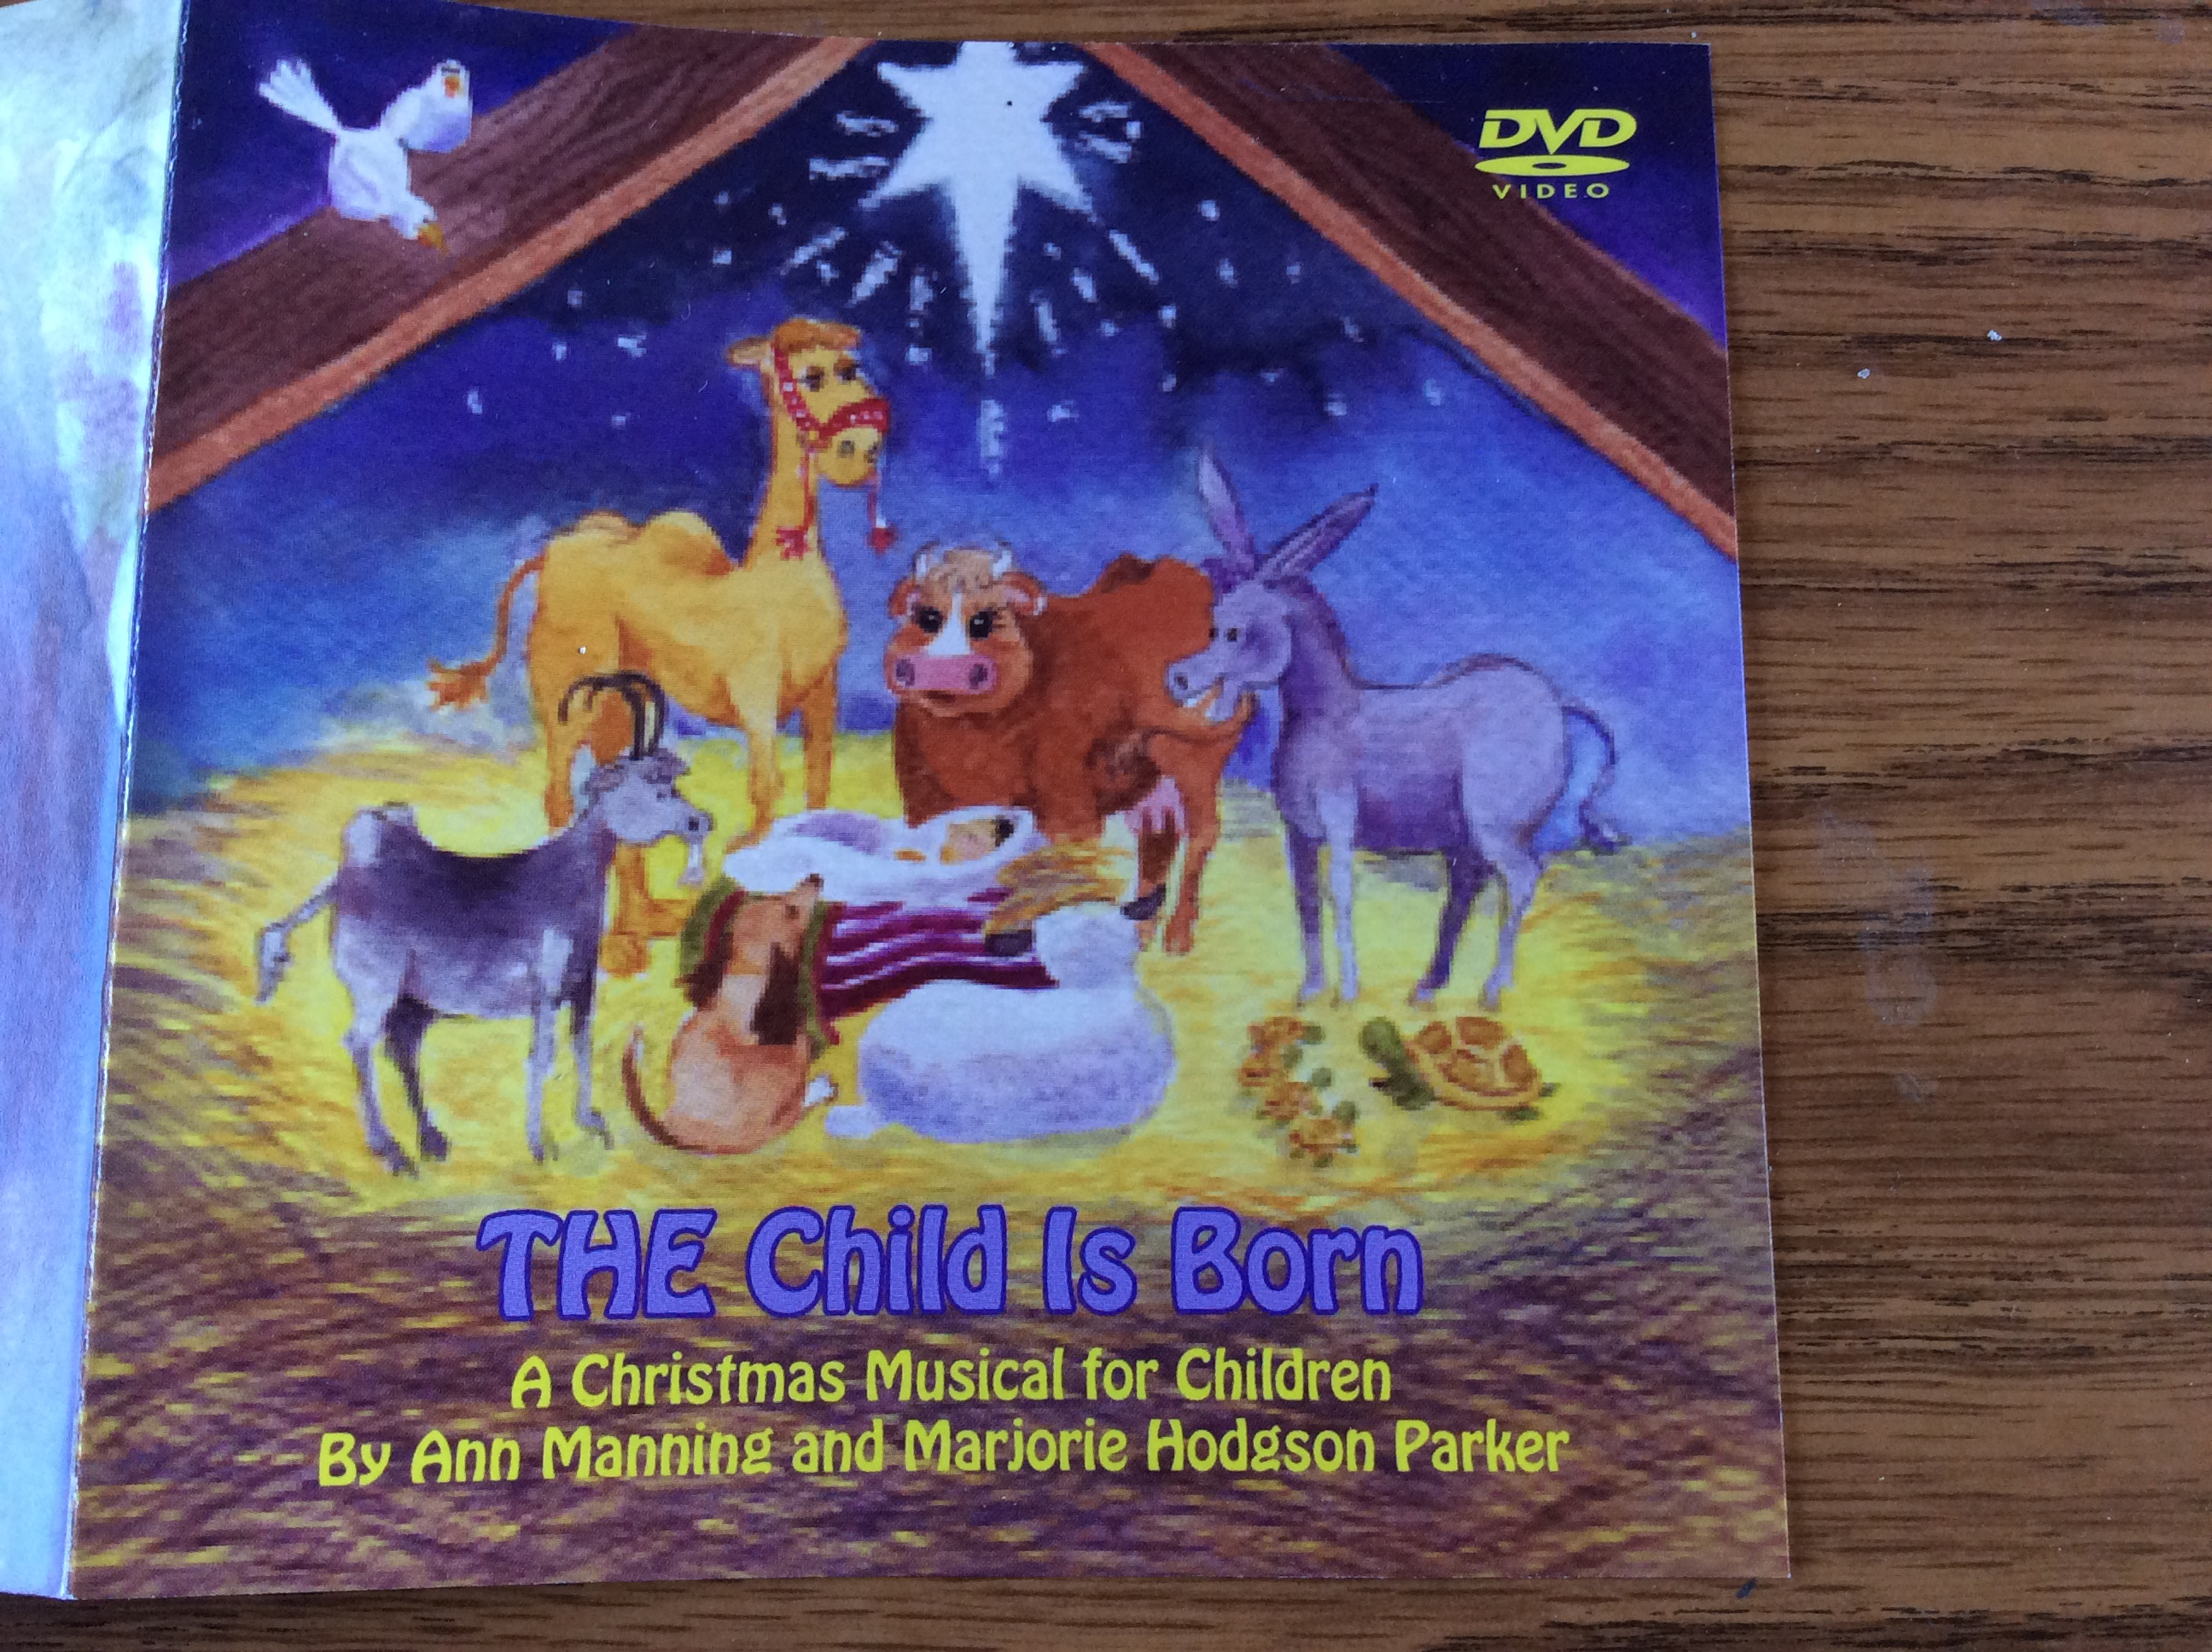 A Christmas Musical for Children